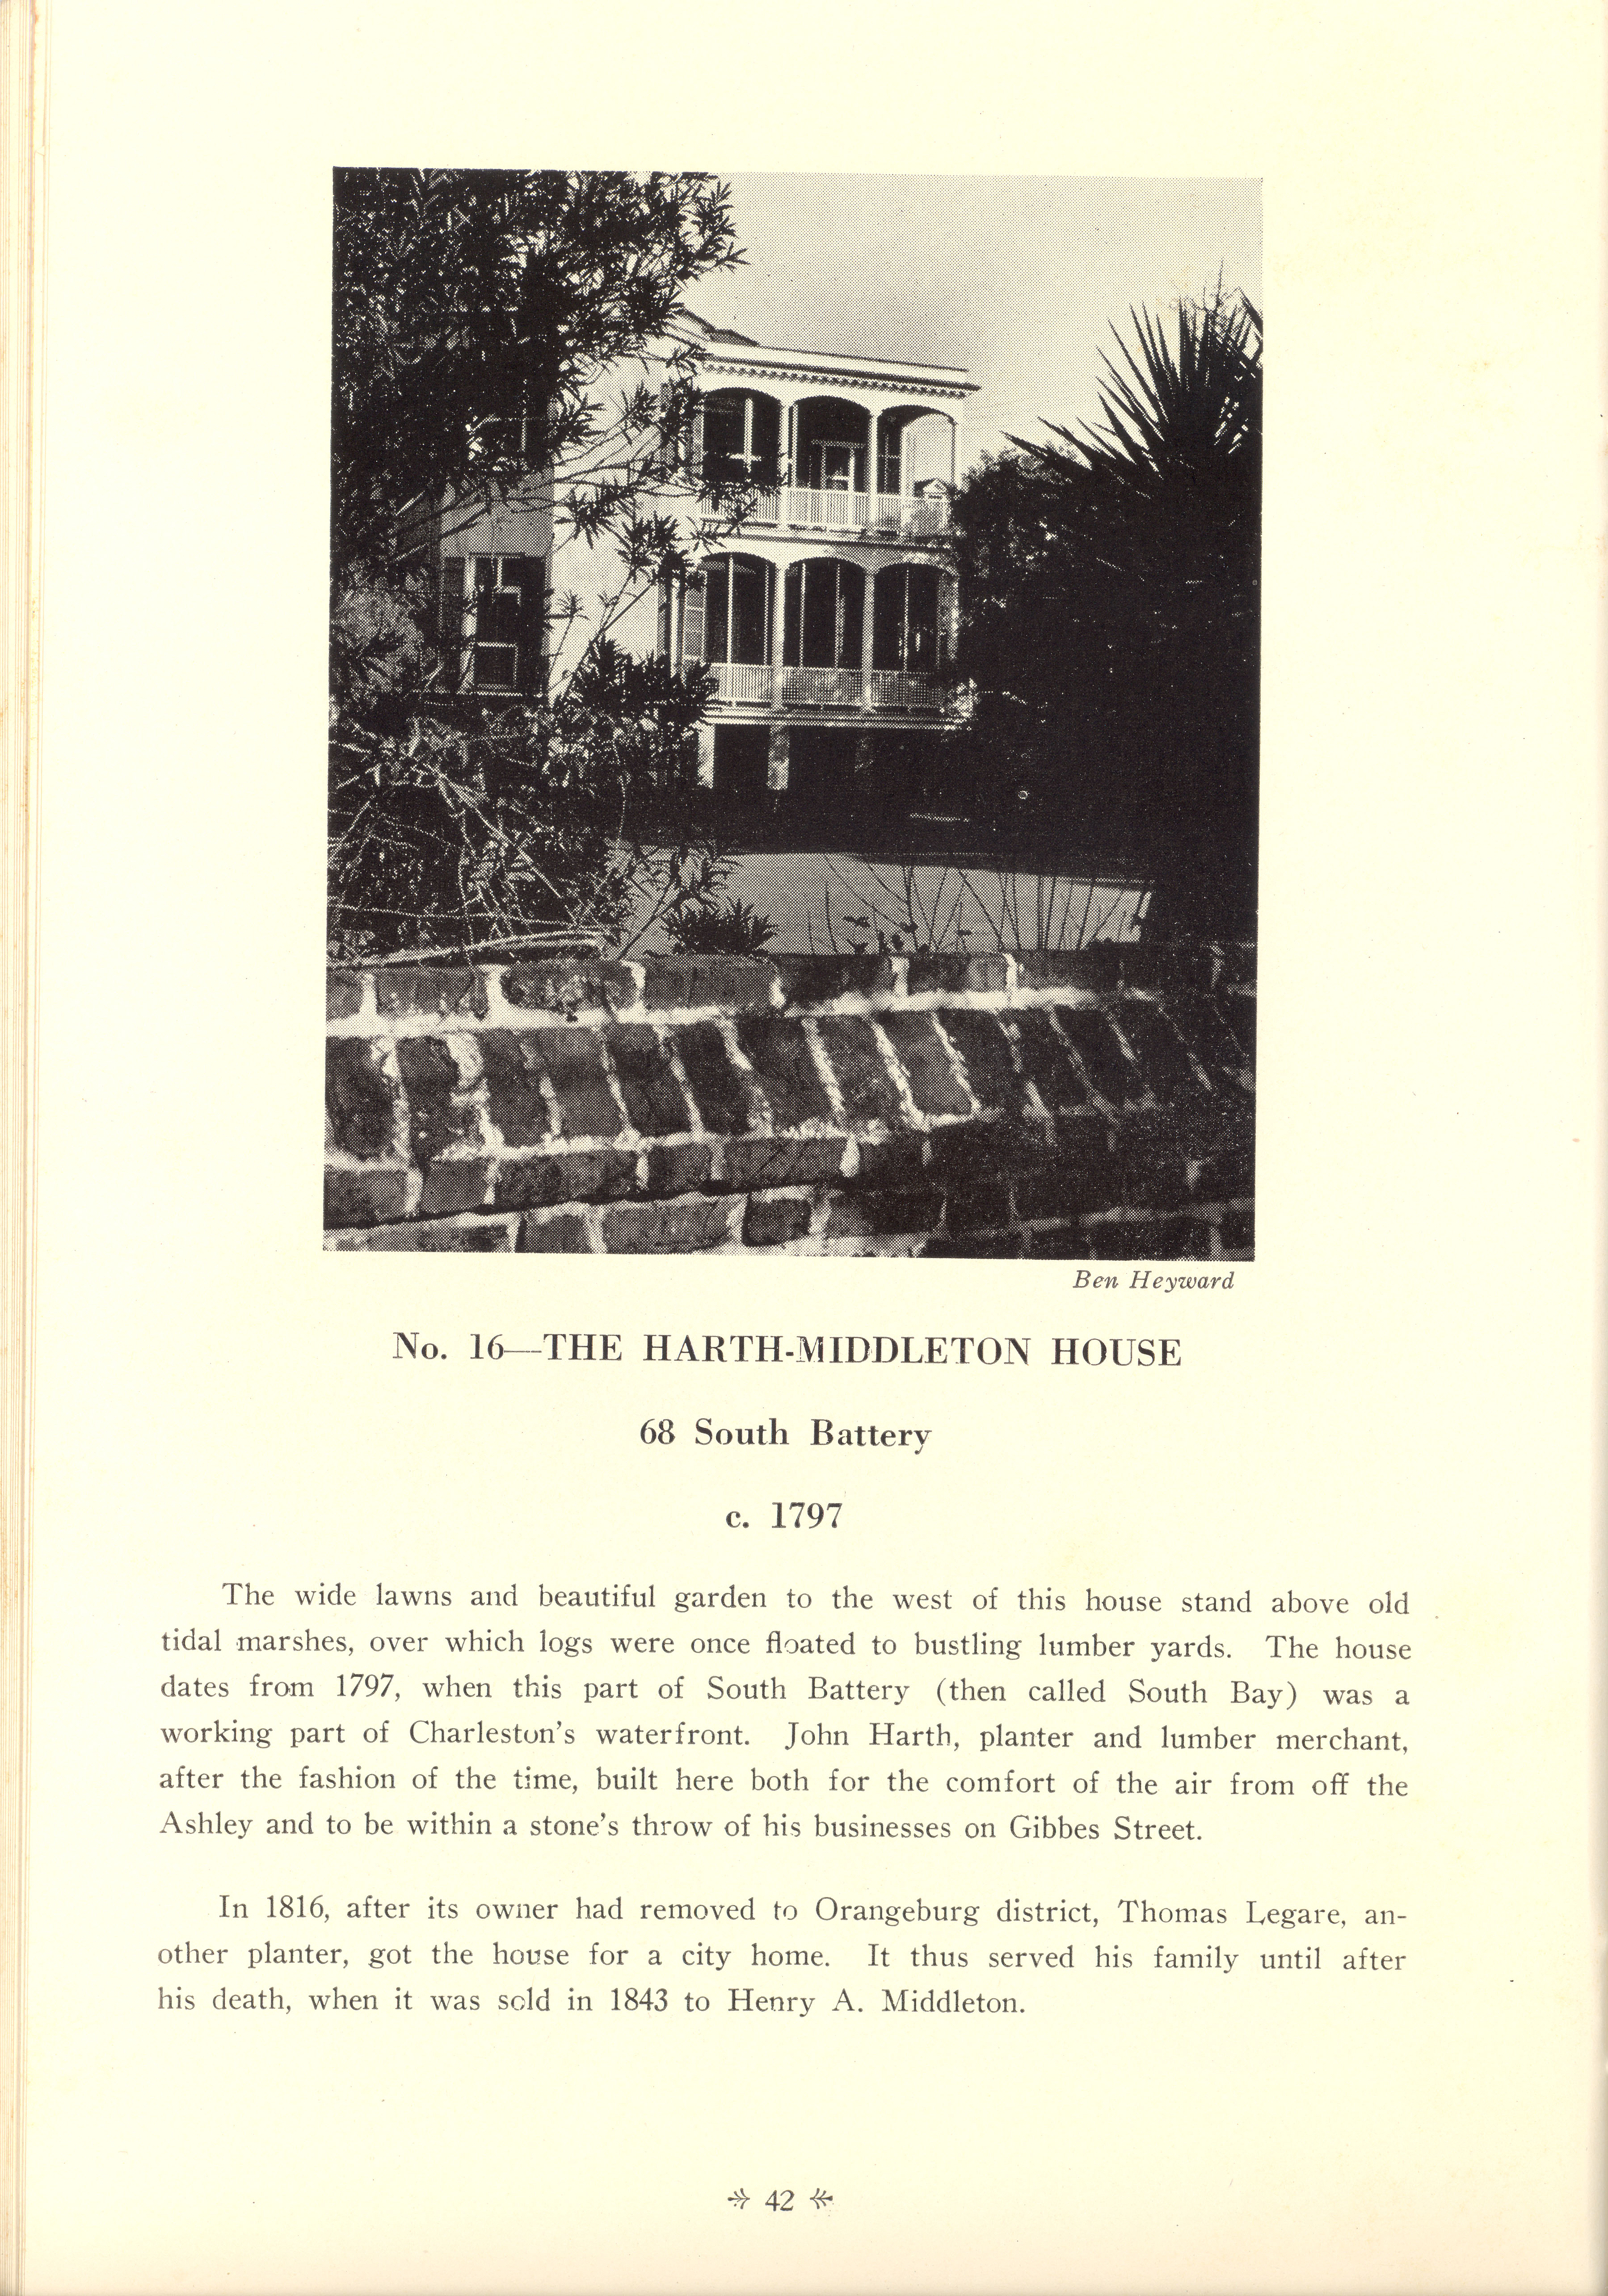 Page 42:  No. 16 - The Harth-Middleton House, 68 South Battery, c. 1797